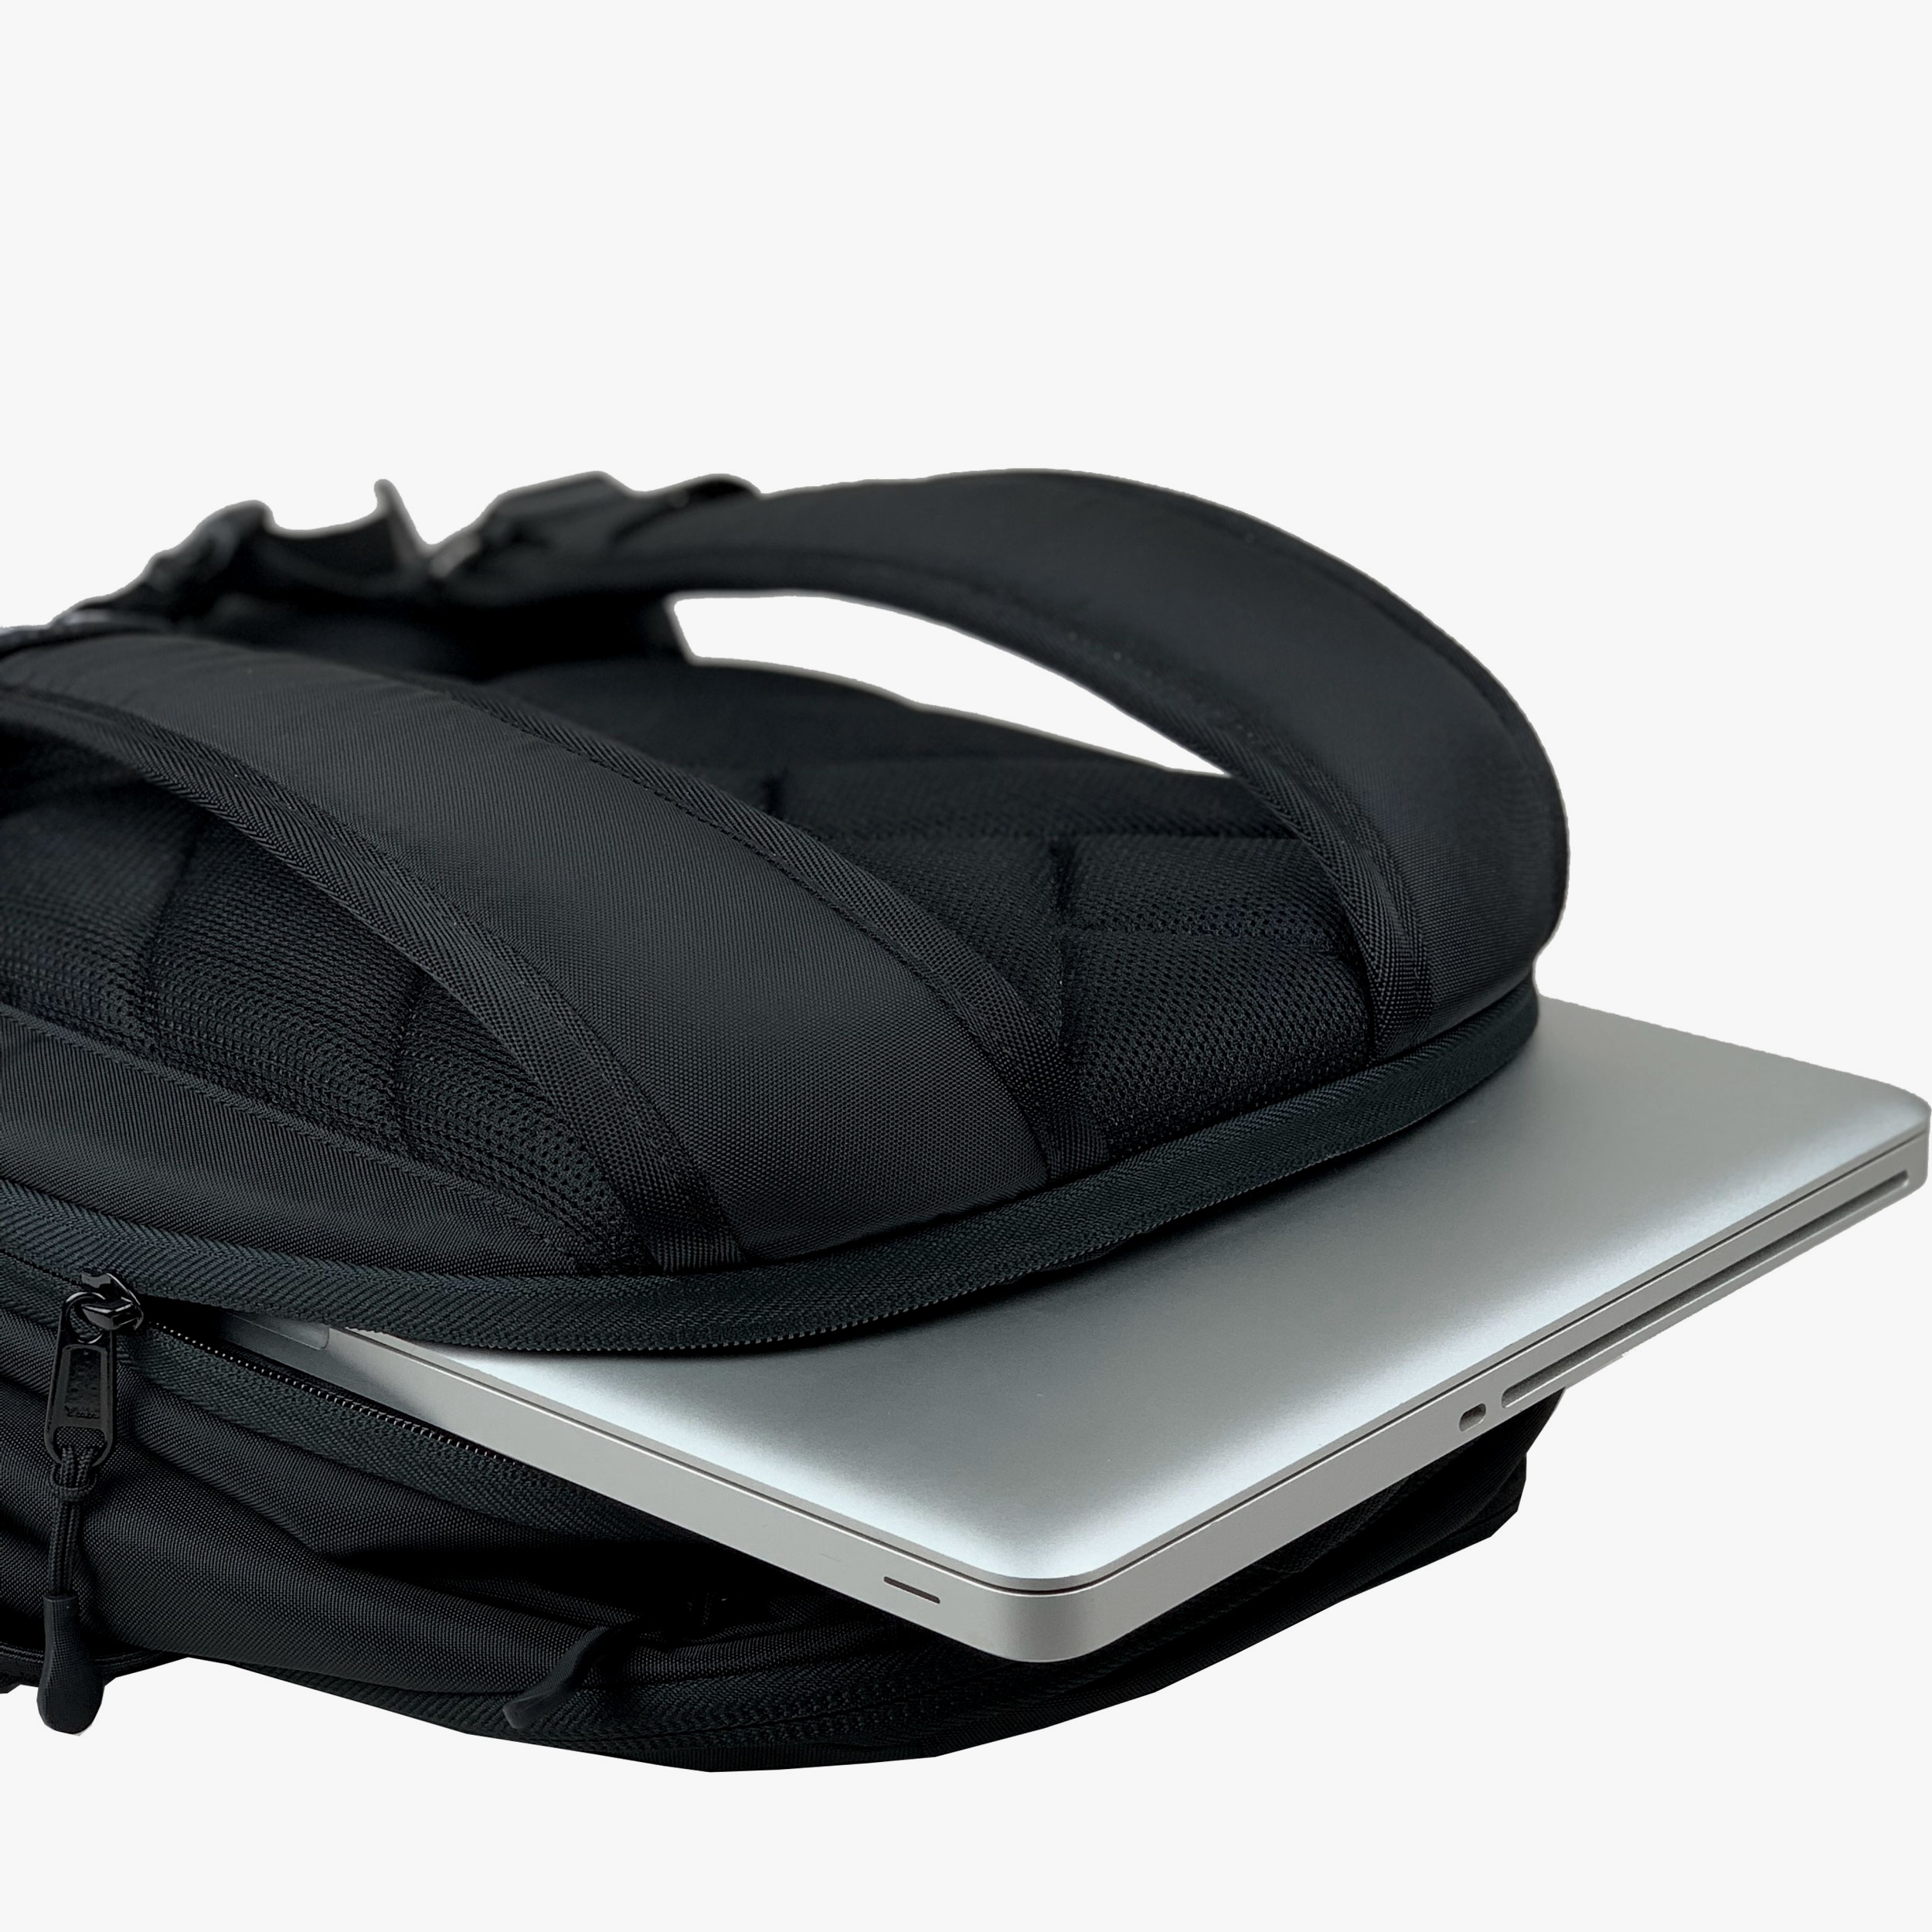 Laptop Compartment Backpack - All of our 2019 models have a dedicated laptop compartment located in the back panel — except for the Urban 20 model. This laptop compartment is easily accessible and literally sandwiches your laptop between two fabric-lined thick layers of foam padding. See the below table showing the models and the laptop sizes that fit.The Urban 20 does not have this specific compartment. Users may carefully place a 13 inch laptop (or some 15 inch laptops) in the main compartment with the rest of their cargo.